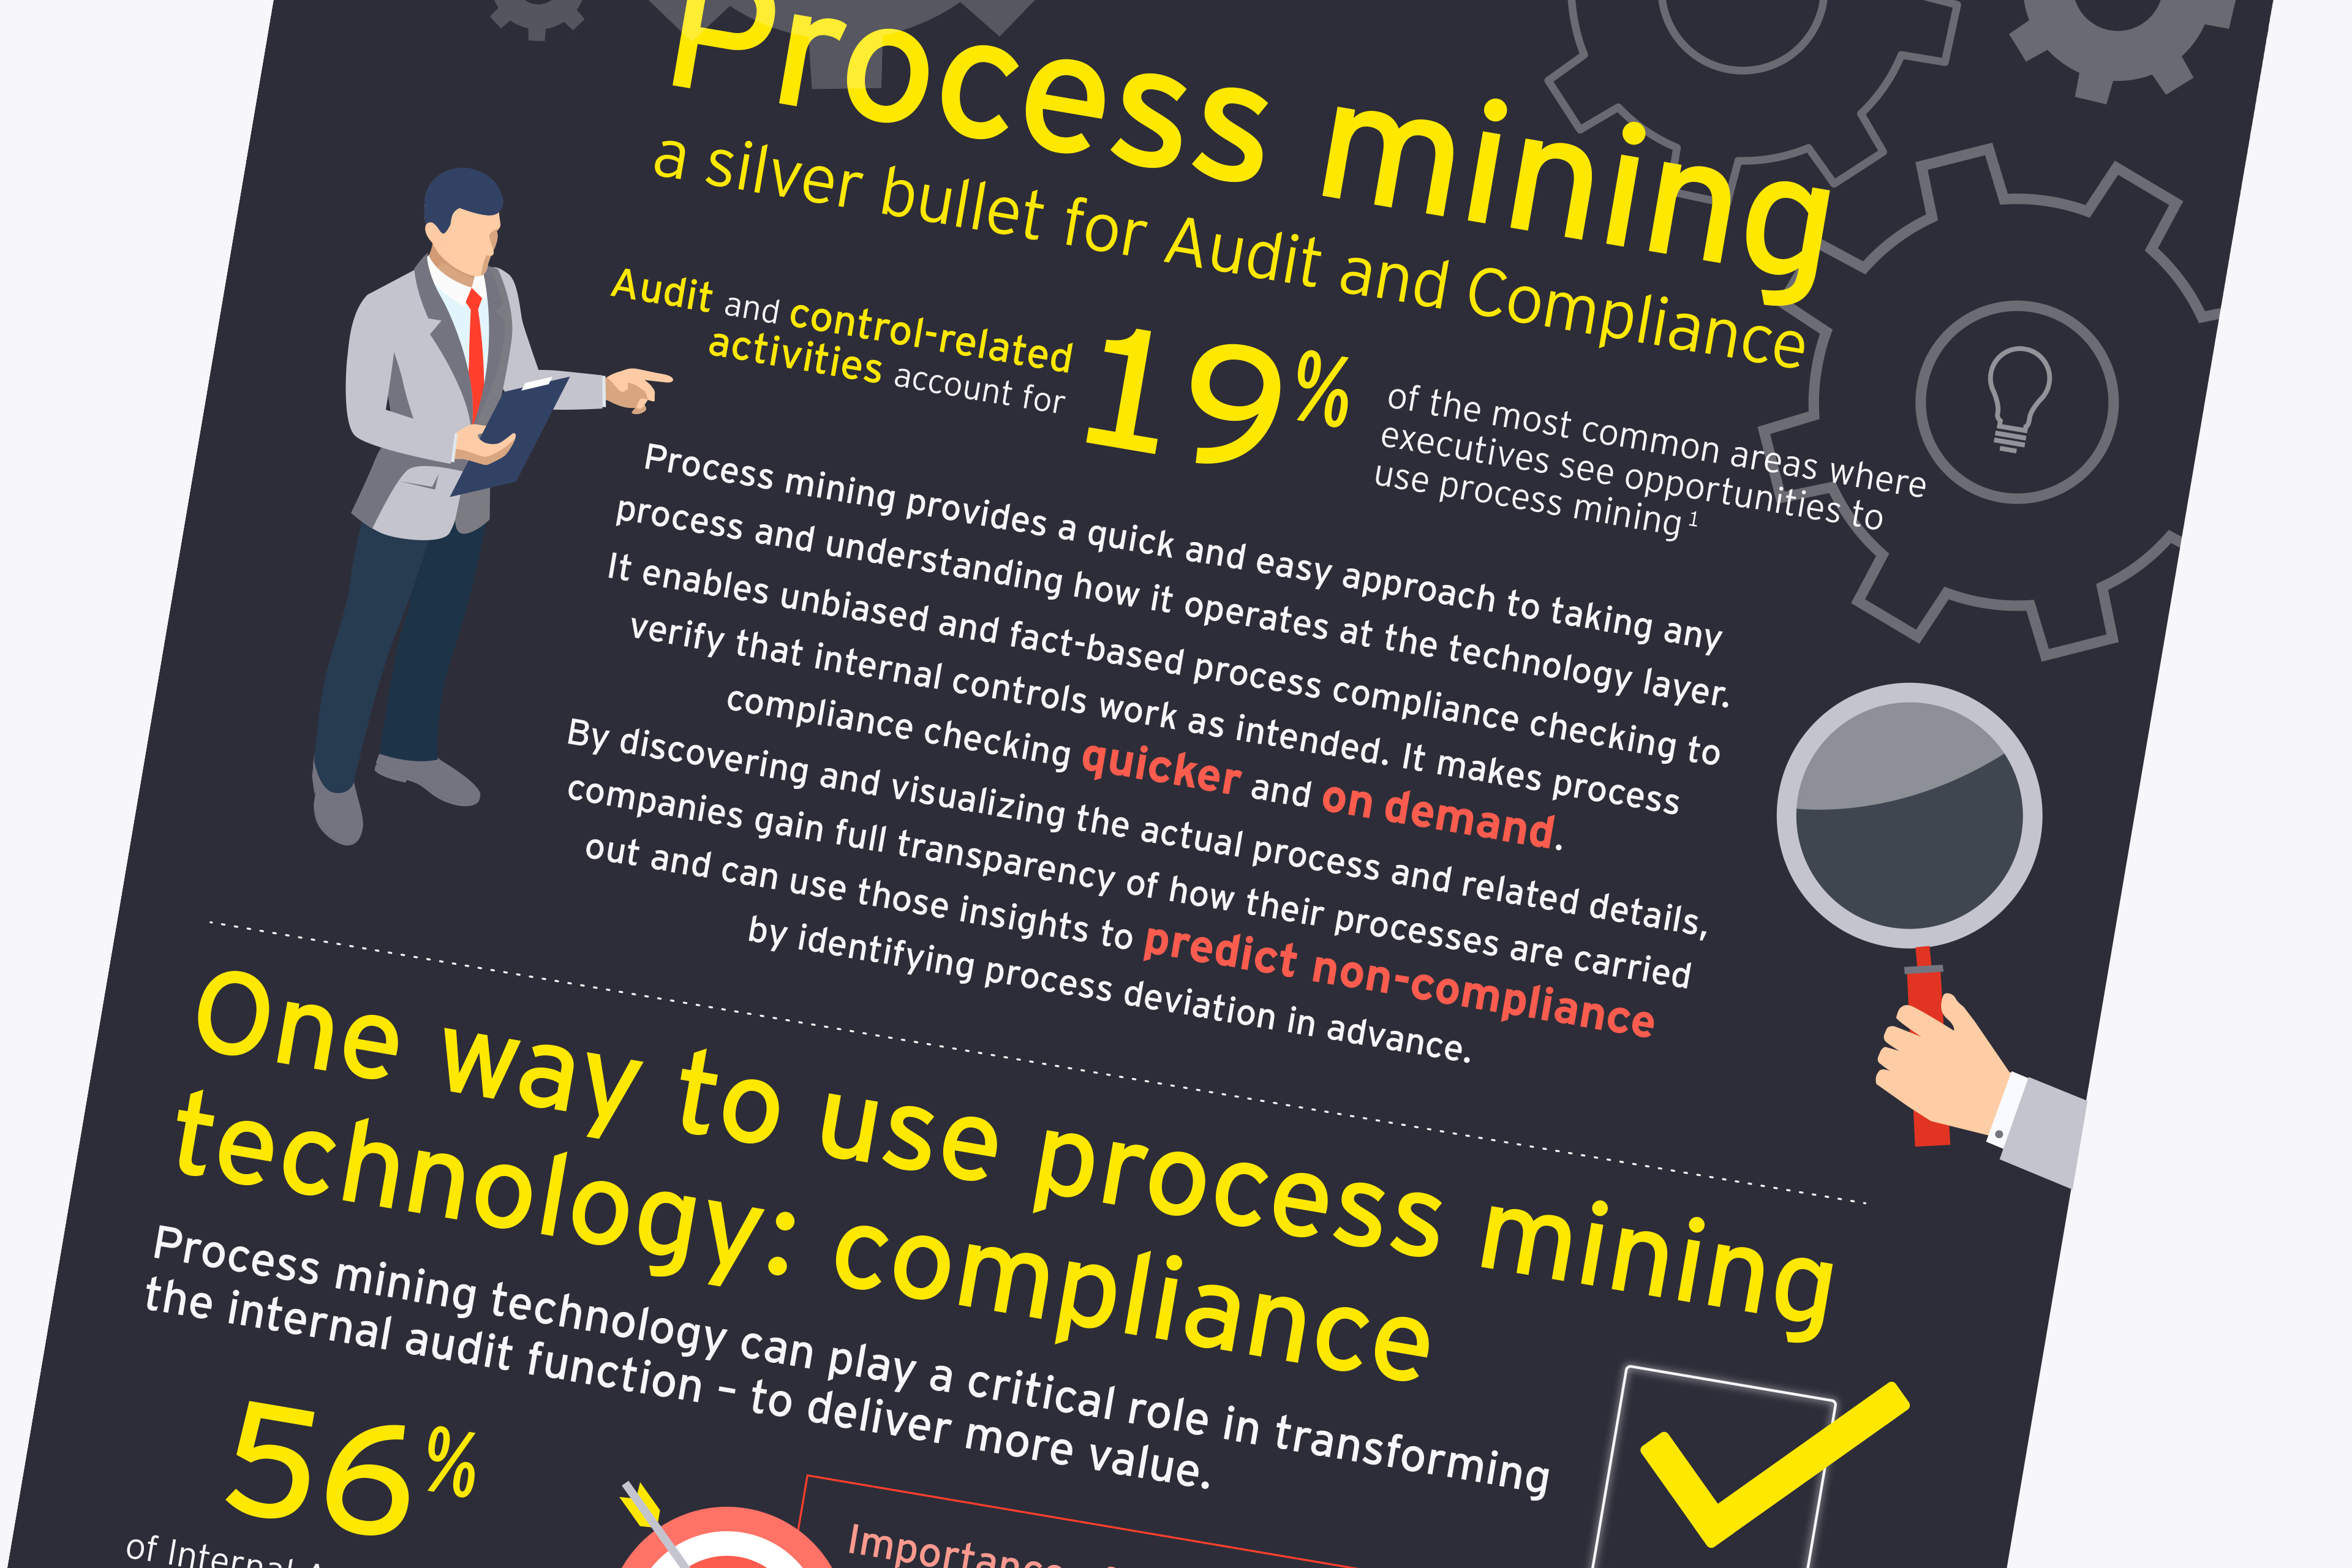 Process mining a silver bullet for Audit and Compliance [infographic]